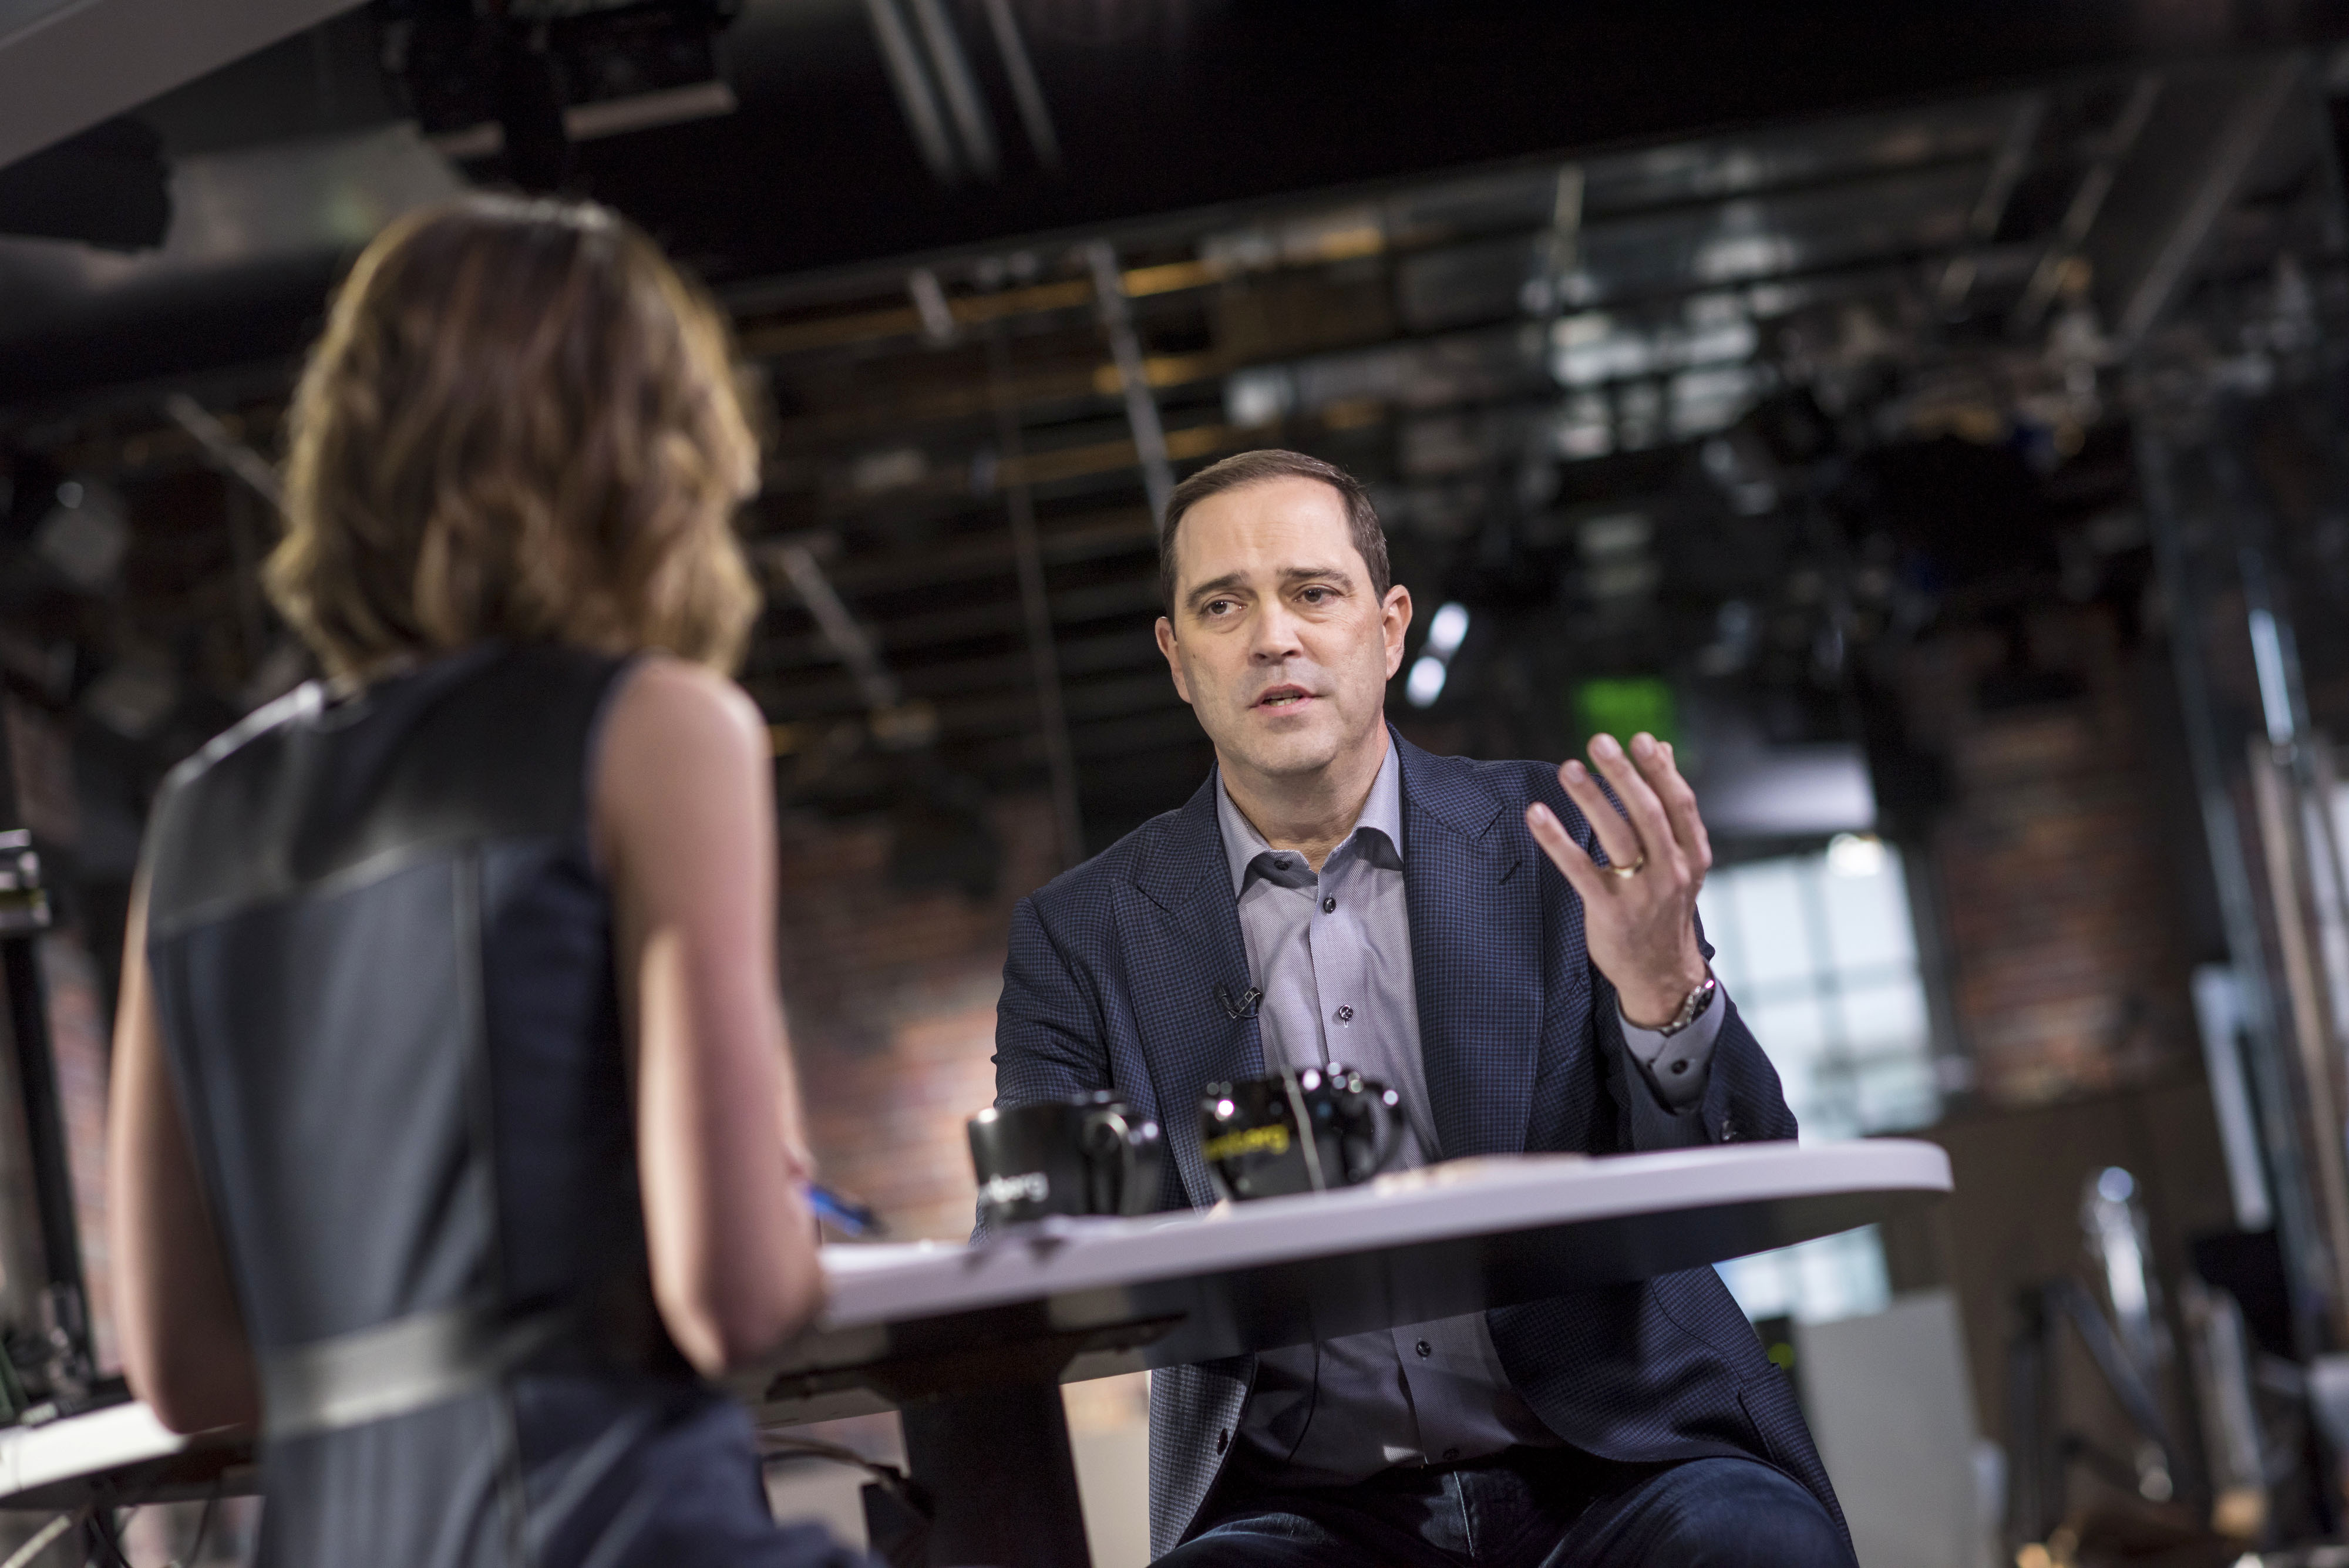 Cisco Technologies Inc Chief Executive Officer Chuck Robbins during a television interview